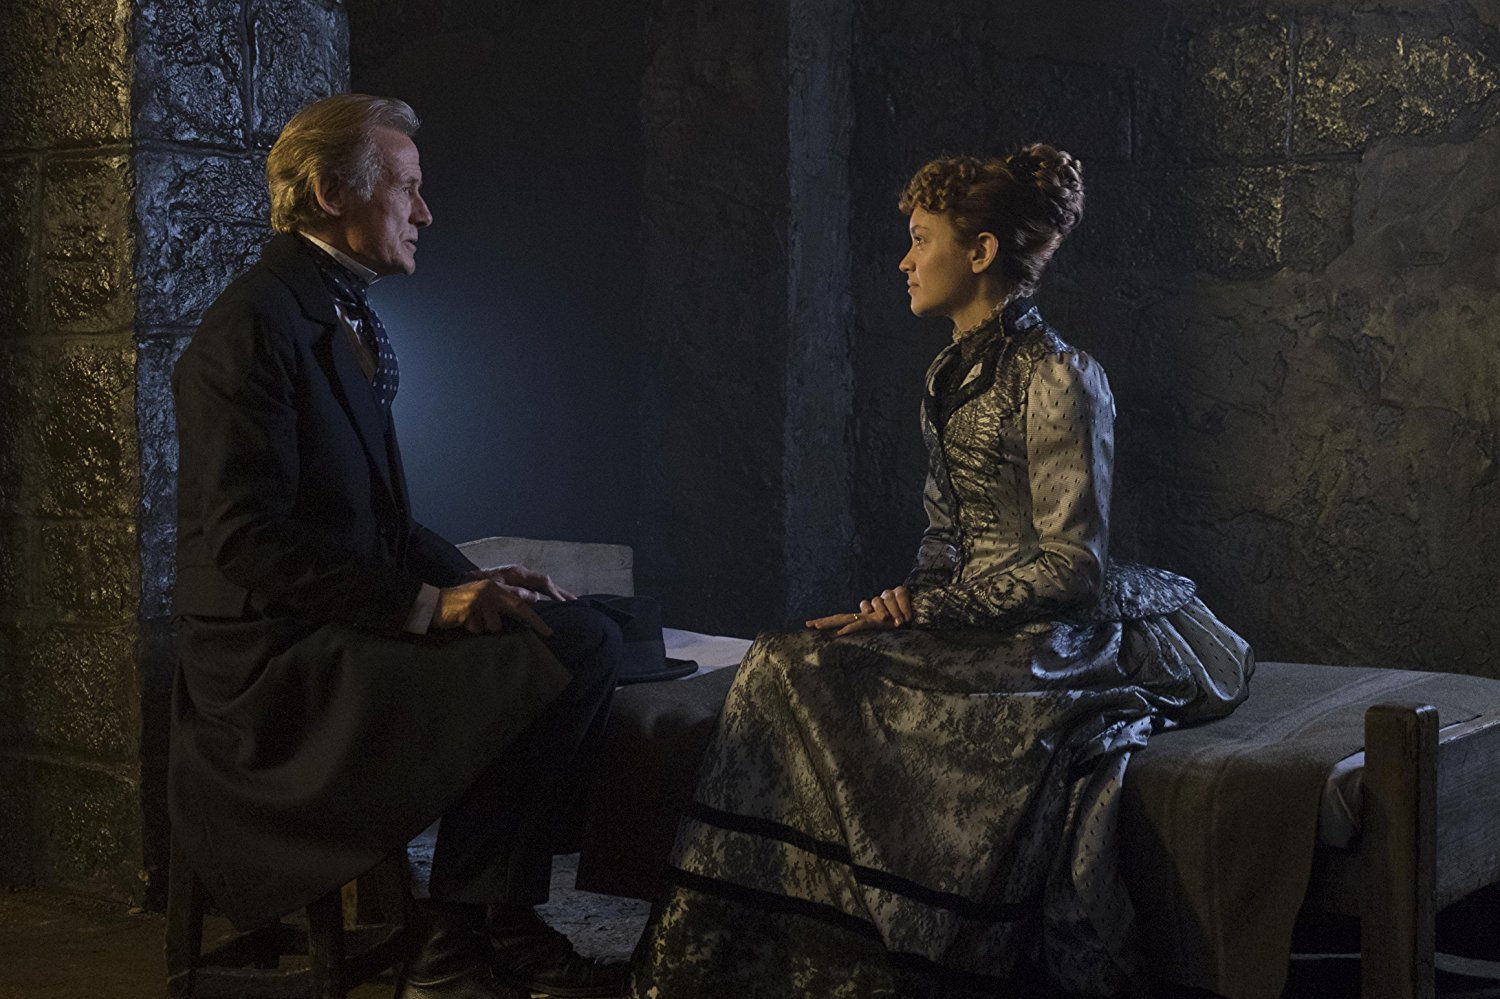 The Power of the Stage in The Limehouse Golem